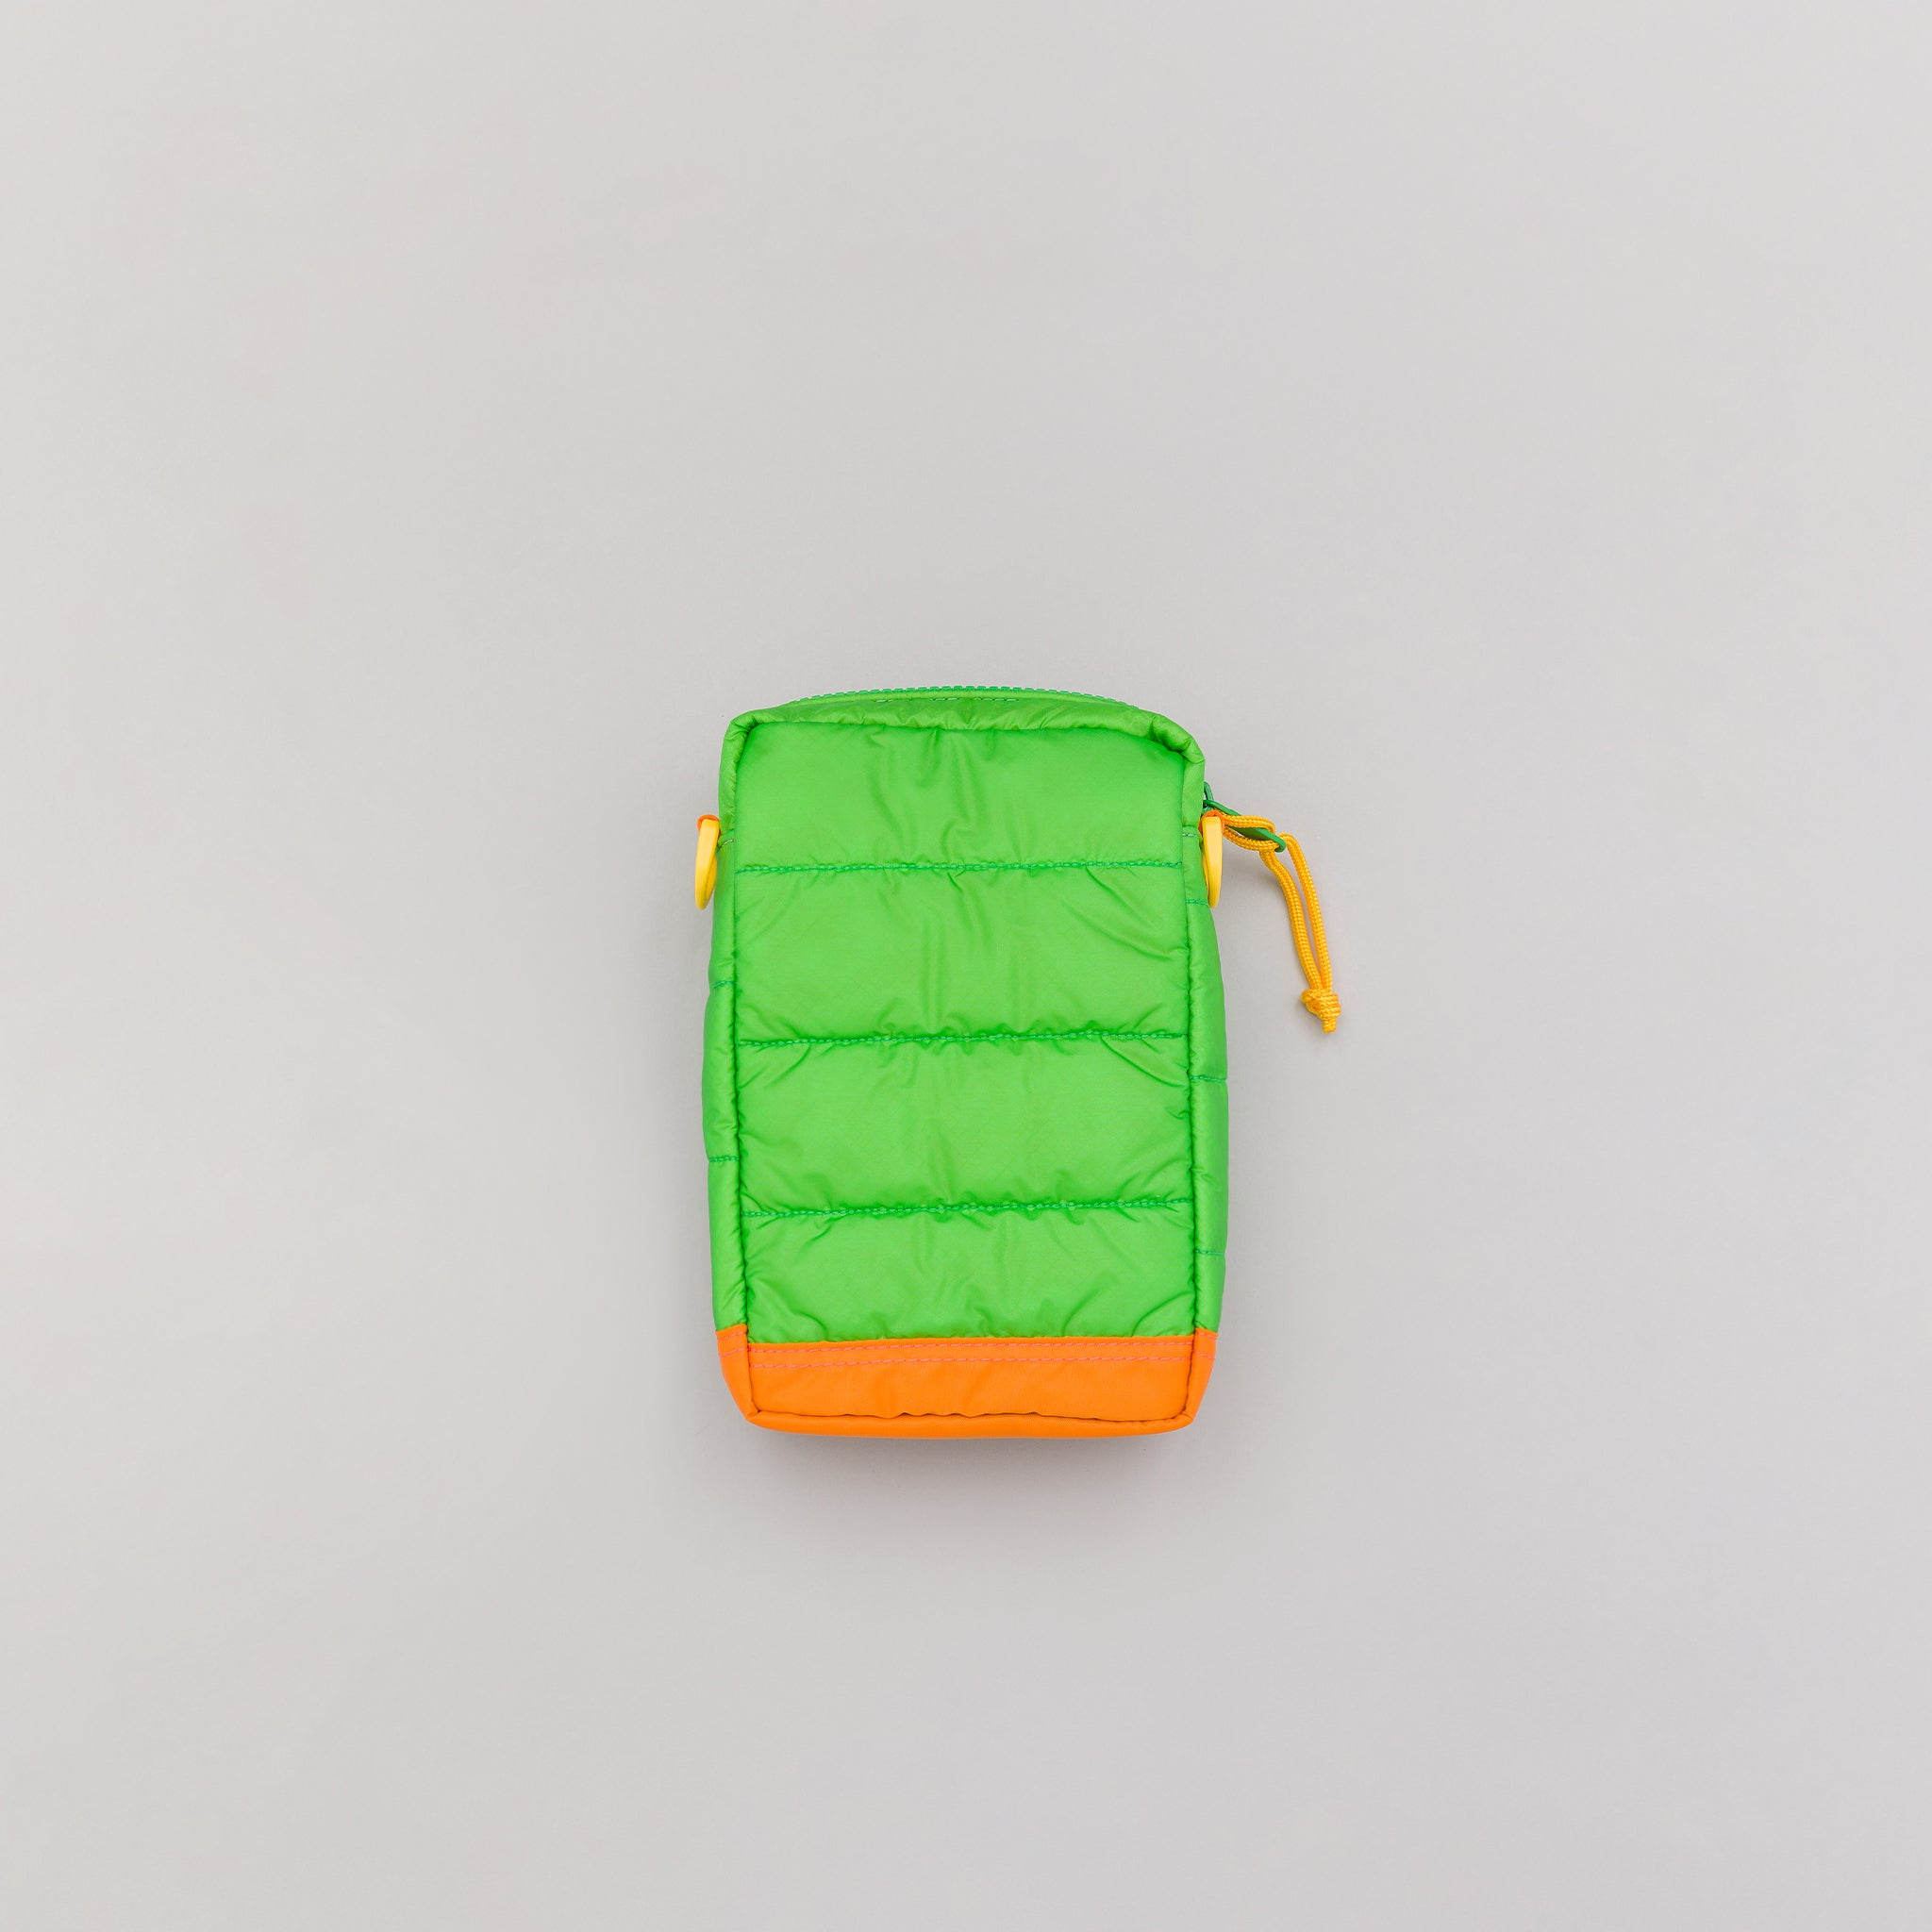 RUKA Shoulder Pouch in Green/Orange